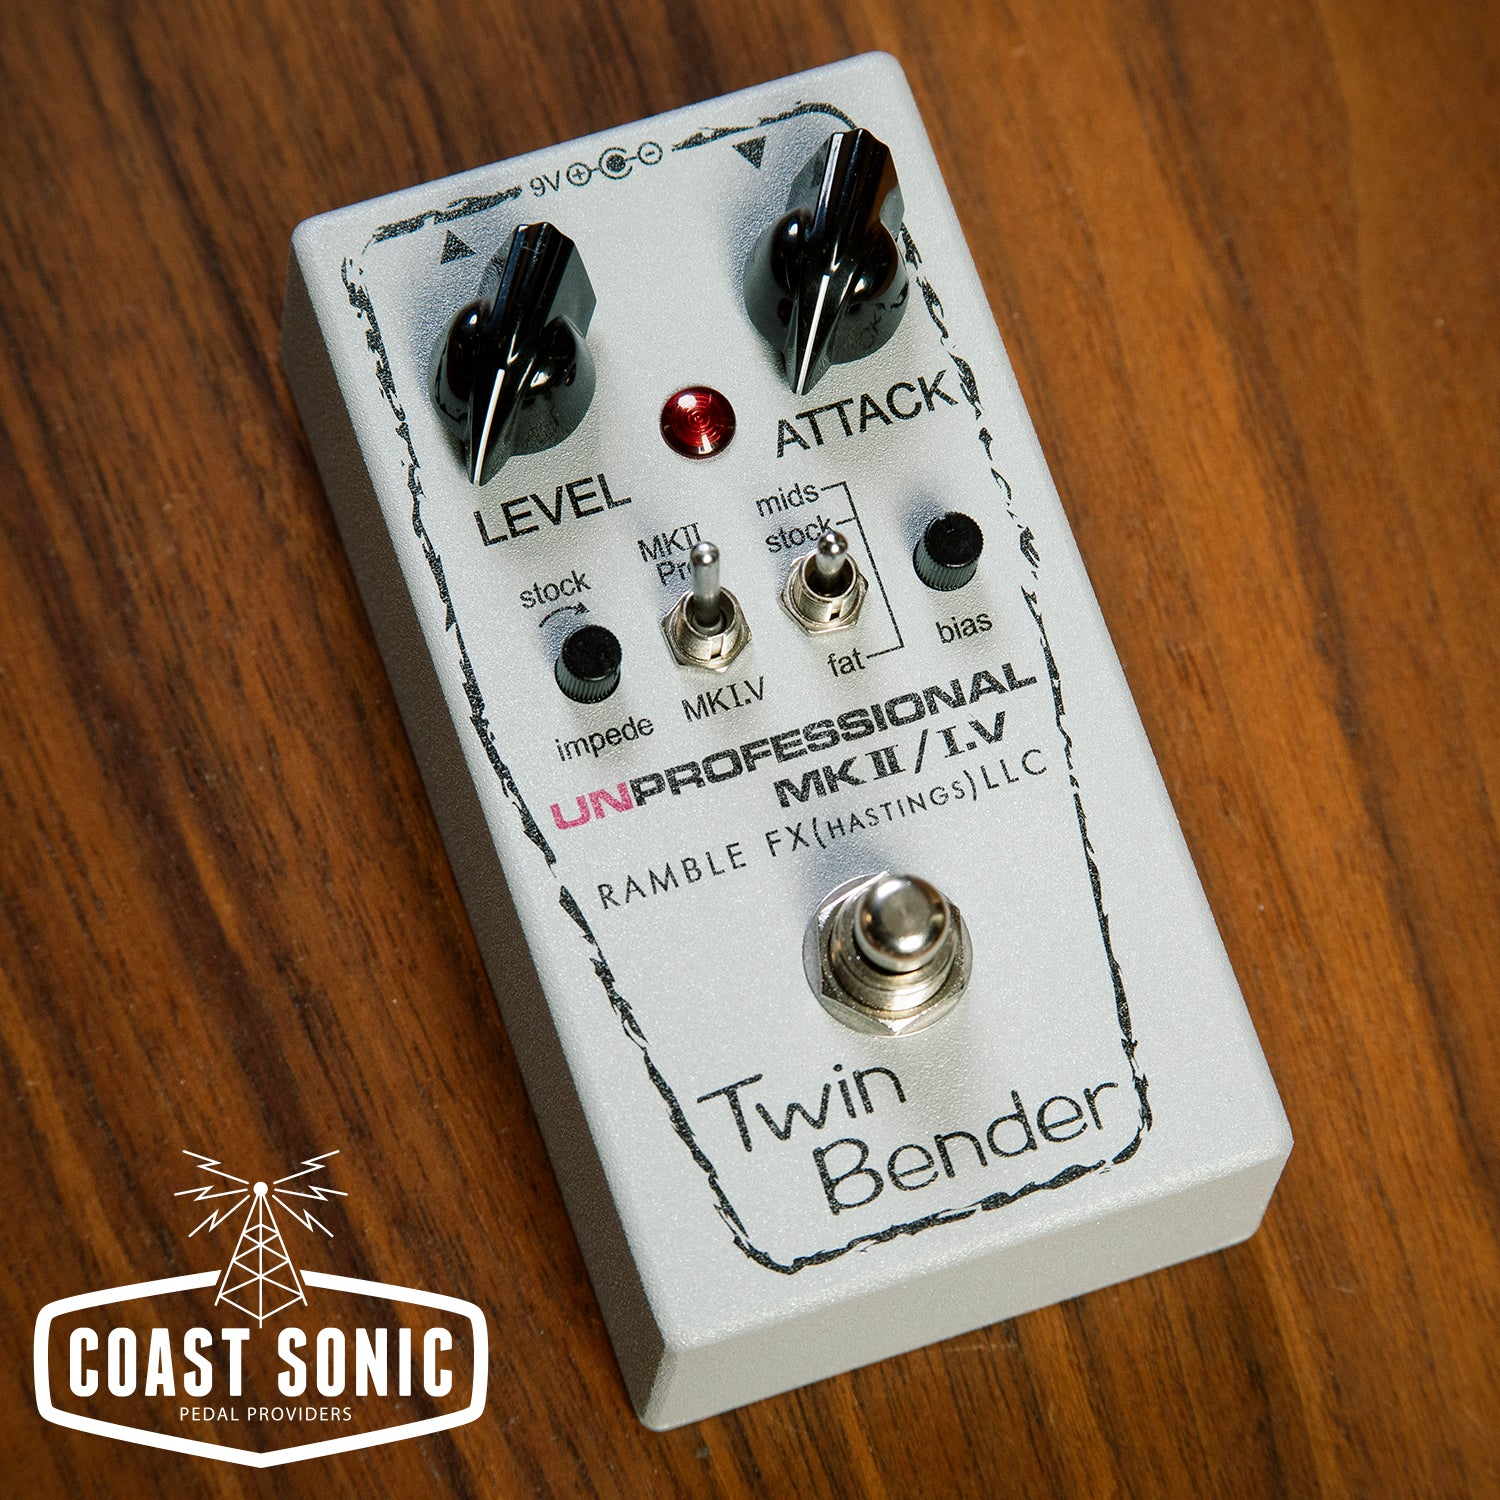 Twin Bender by Ramble FX    Based on two of the great Sola Sound Tone Benders